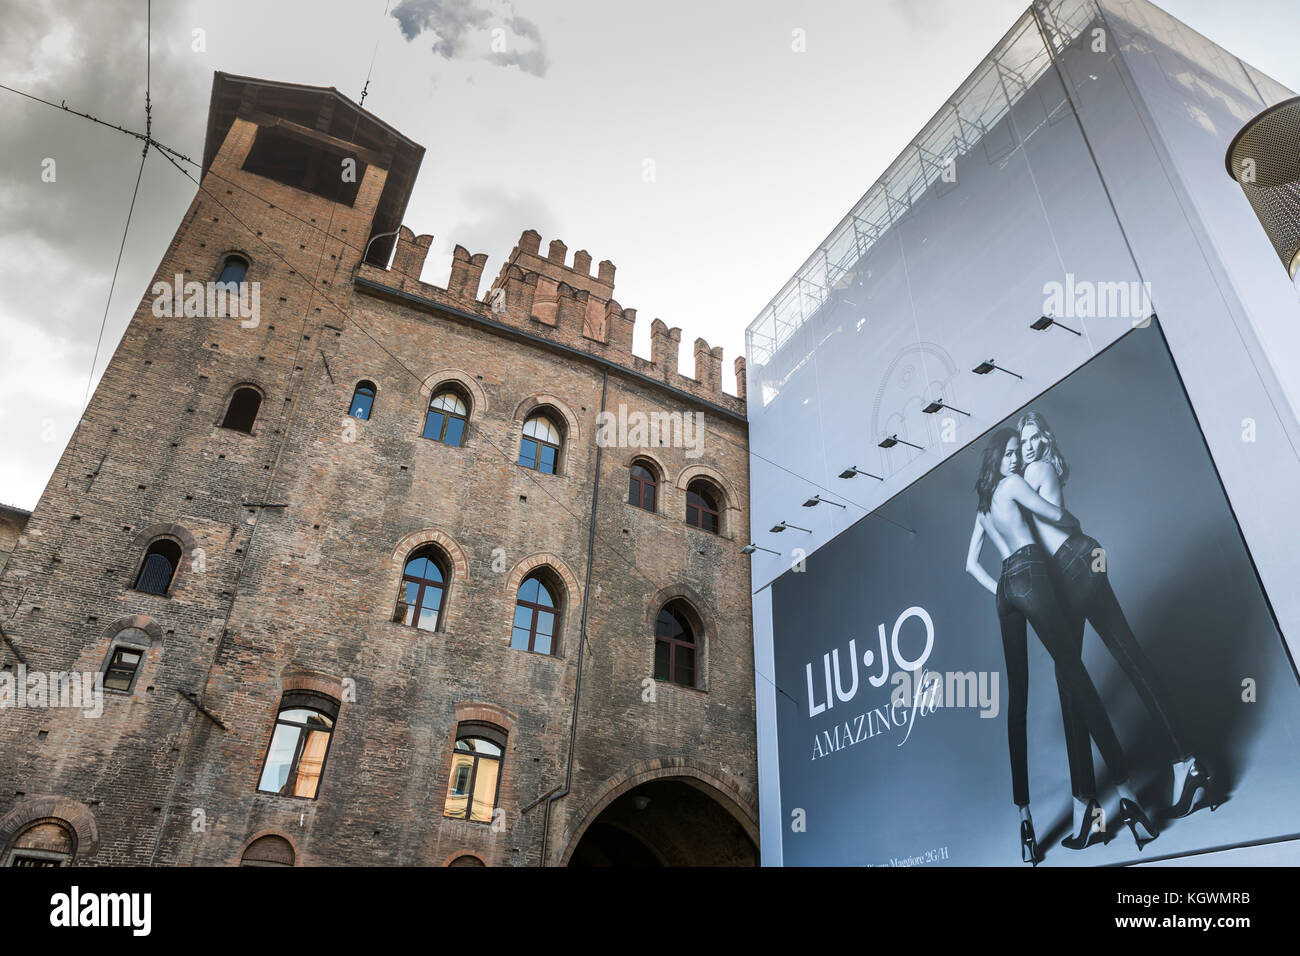 A large fashion advertising banner on the side of Palazzo Re Enzo, Bologna city life, Italy. Stock Photo